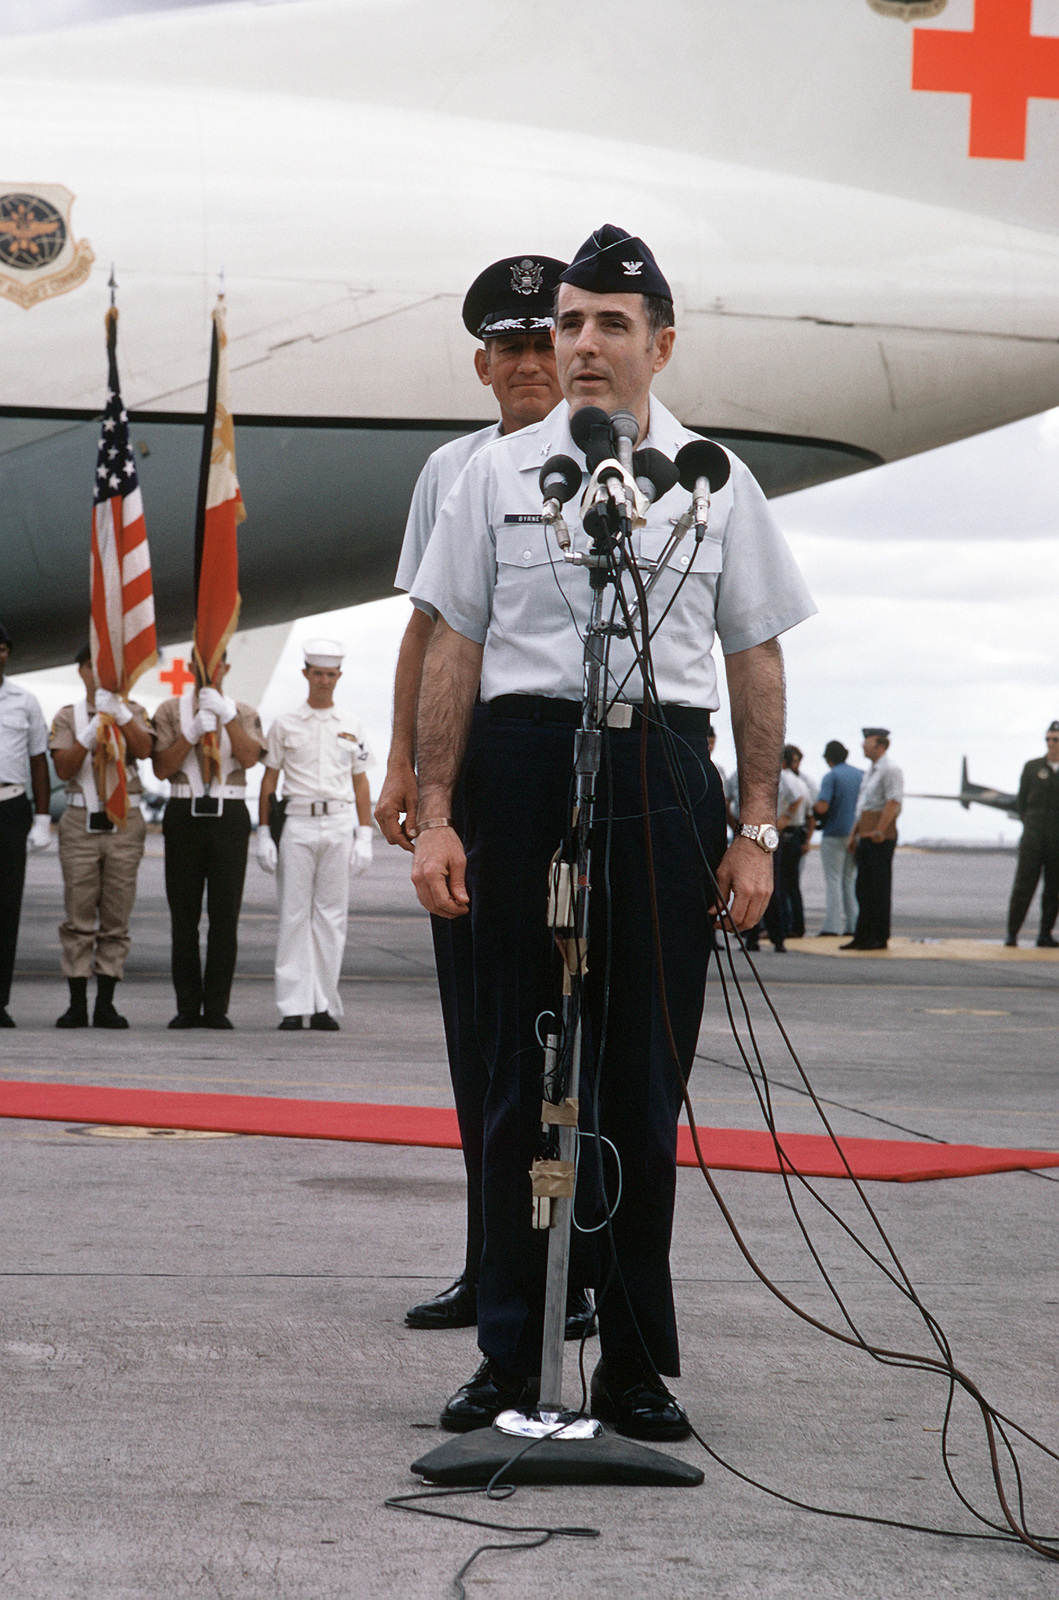 Former POW and U.S. Air Force COL Ronald Edweard Byrne Jr. talks to press and well wishes at microphones prior to boarding the C-141 Starlifter for the flight to sthe states. Behind COL Byrne is LGEN William G. Moore, Commander 13th Air Force. COL Byrne was captured on 29 Aug 65 and was released in Hanoi by the North Vietnamese on 12 Feb 73